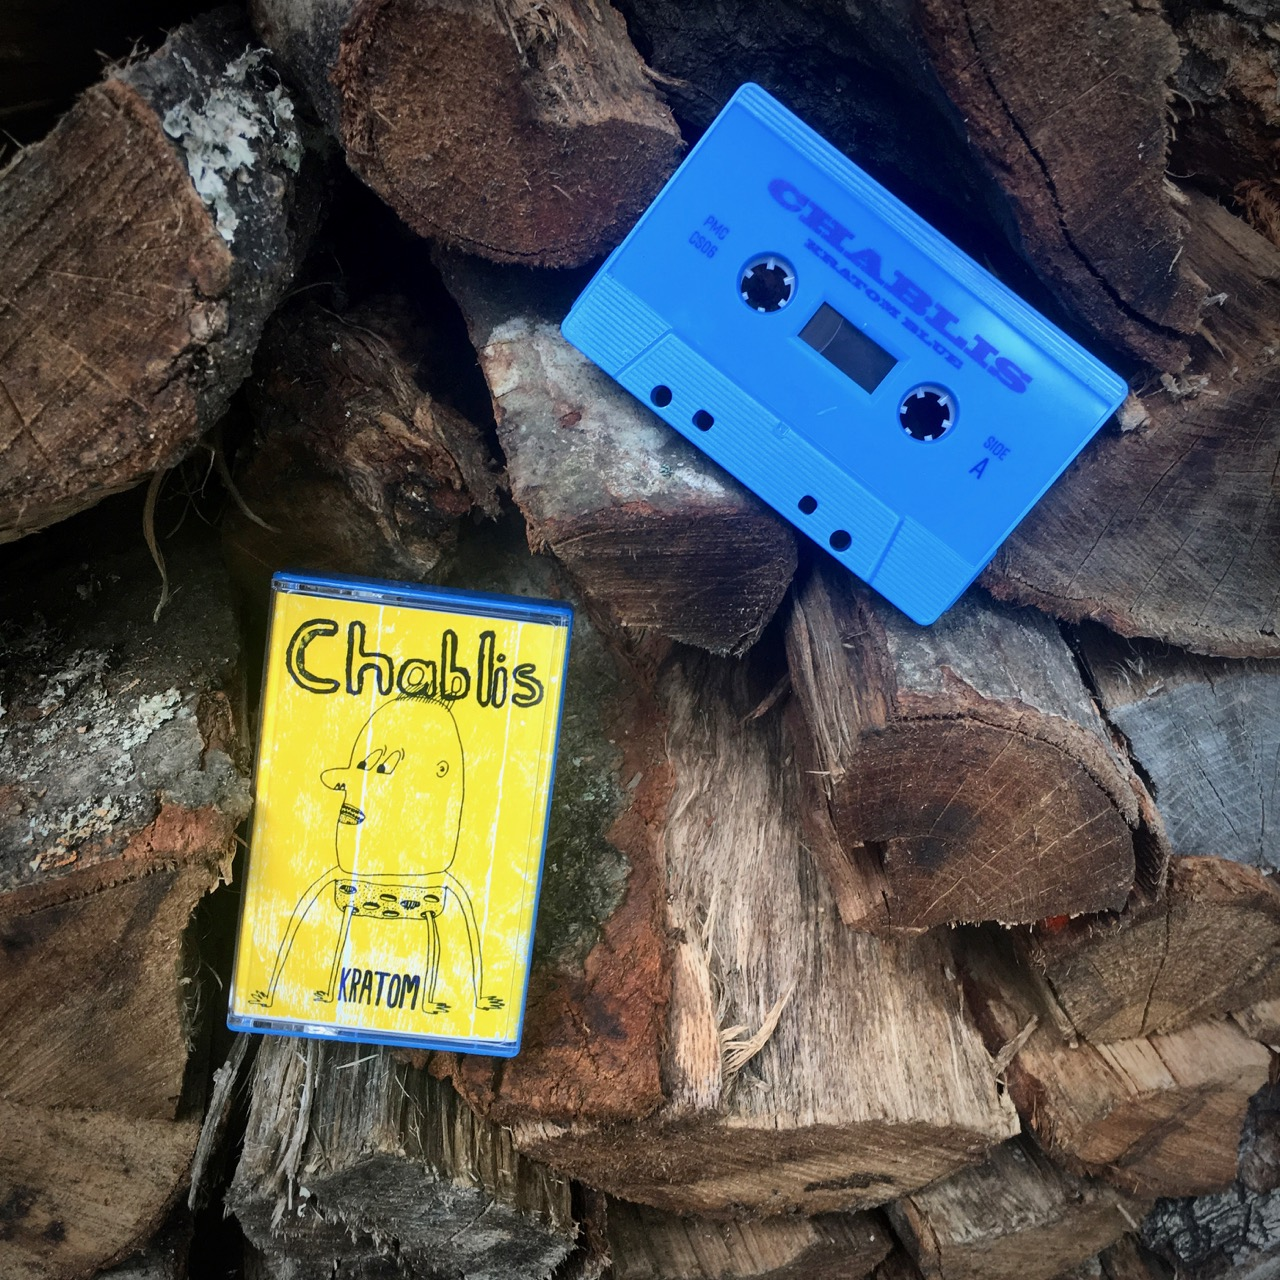 KRATOM BLUE-Chablis - Incongruous alt-alt country. Degenerate Americana. Left-field, piquant, damaged. Charles and Jean-Claude choked on kratom dusts, barbecue, and lake trout during the making of this EP. Two live bonus tracks are included on this cassette release.Listen and buy it HERE